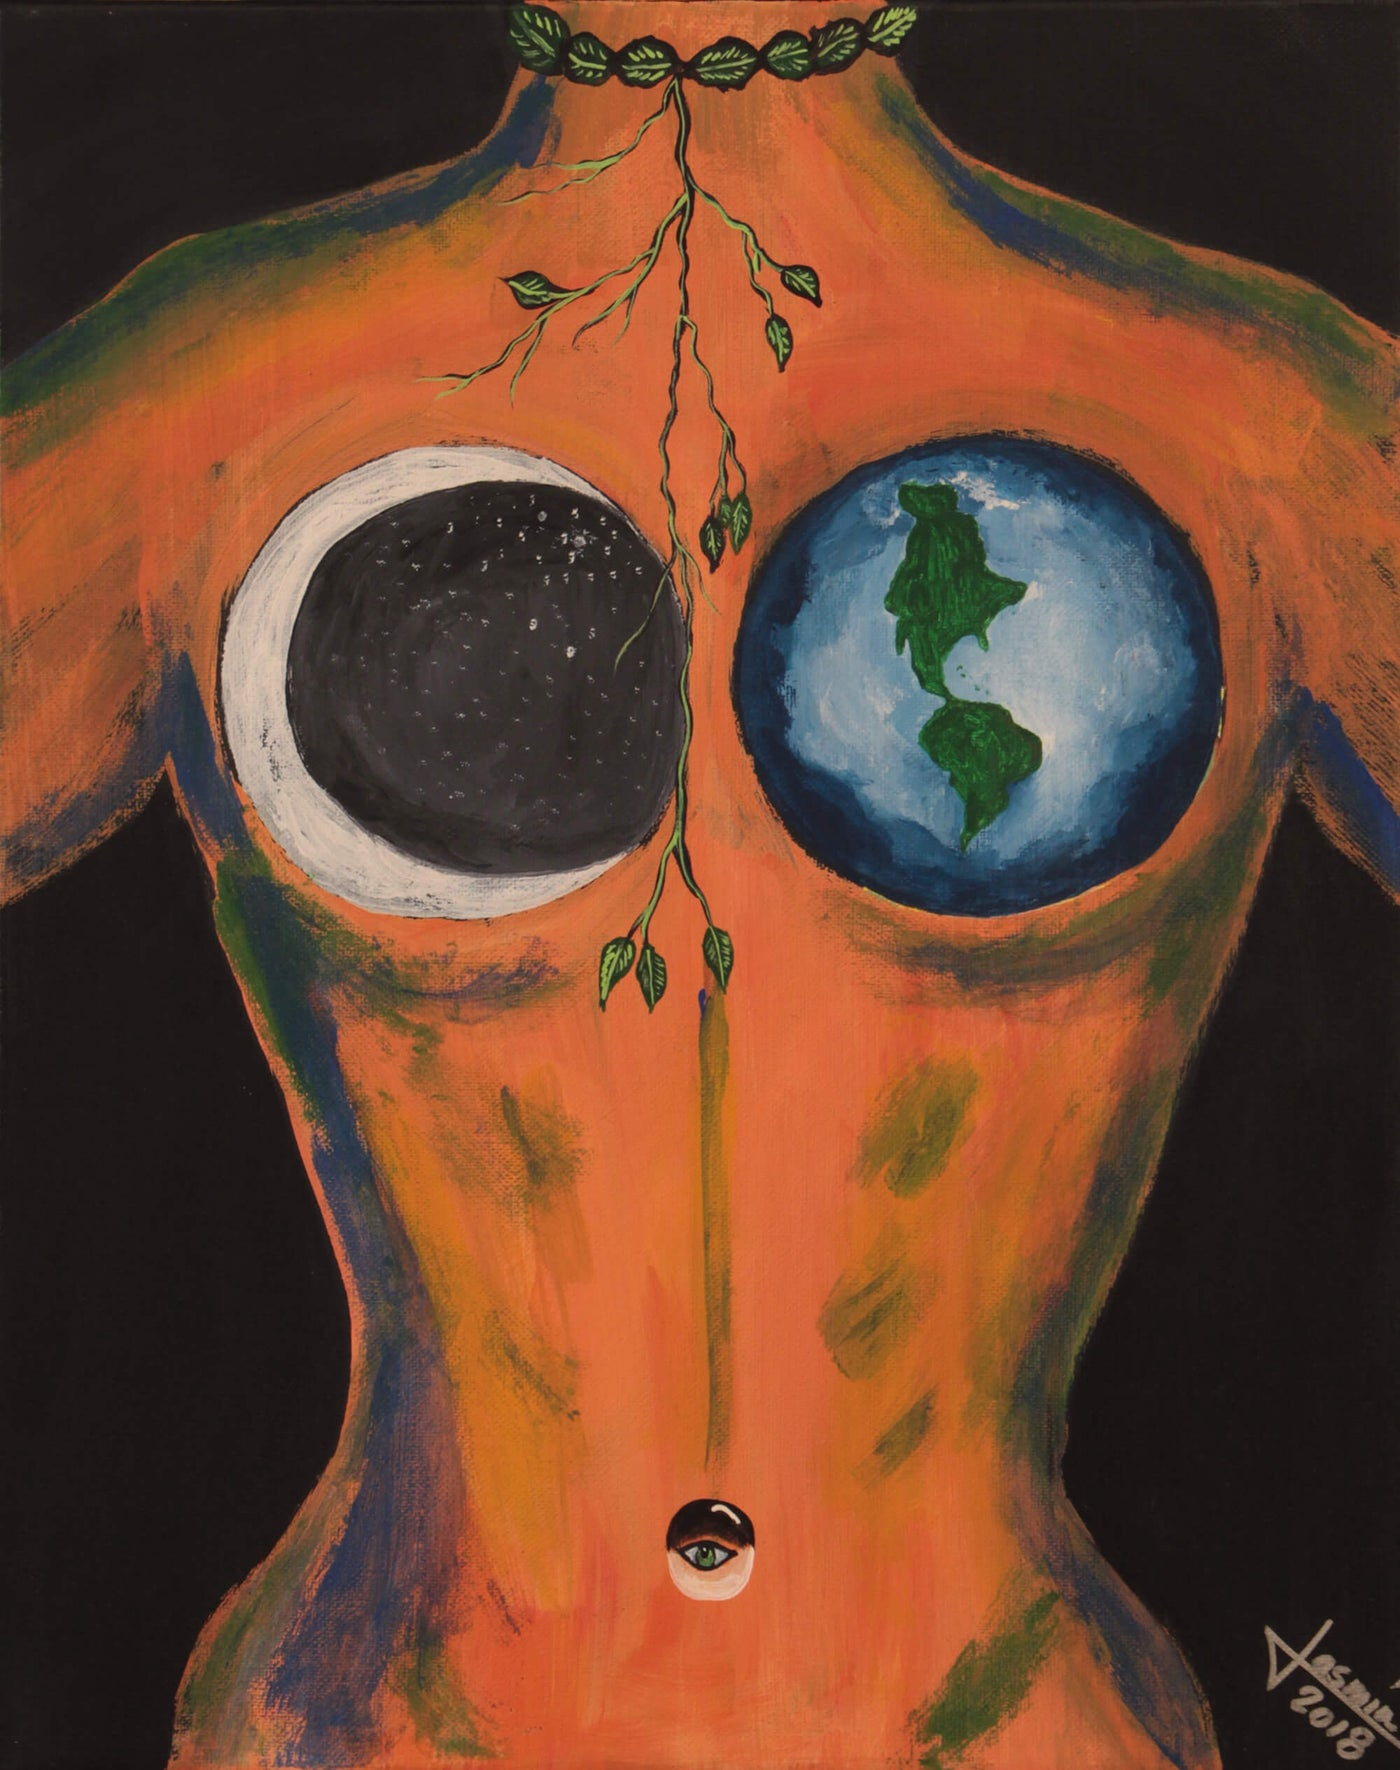 Acrylic painting of female torso with moon and planet Earth as breast by Jasmín Camacho